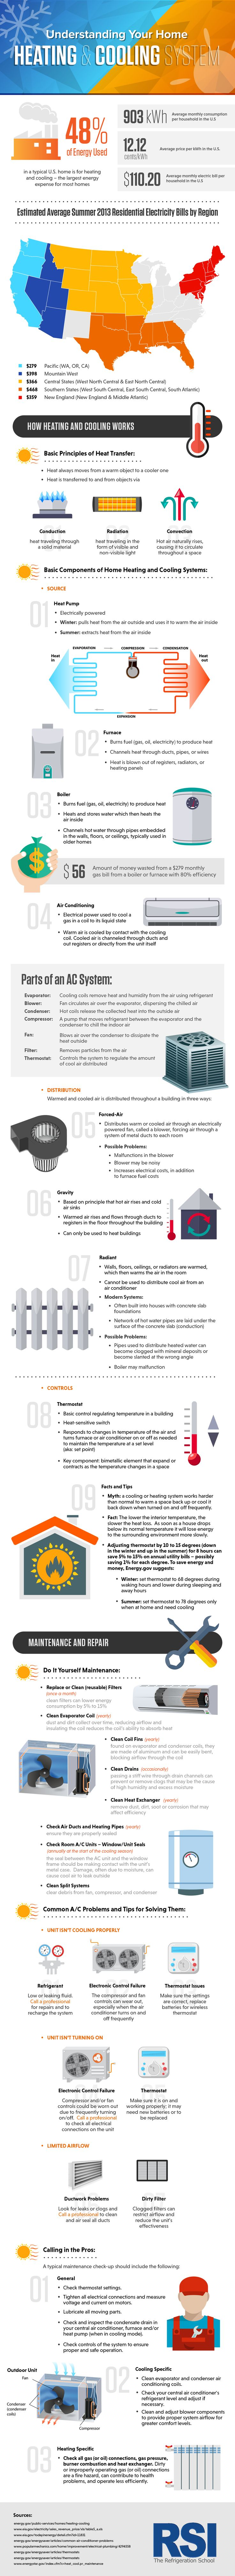 Understanding Your Home Heating and Cooling System [INFOGRAPHIC] by DIY Ready at http://diyready.com/understanding-your-home-heating-and-cooling-system-infographic/